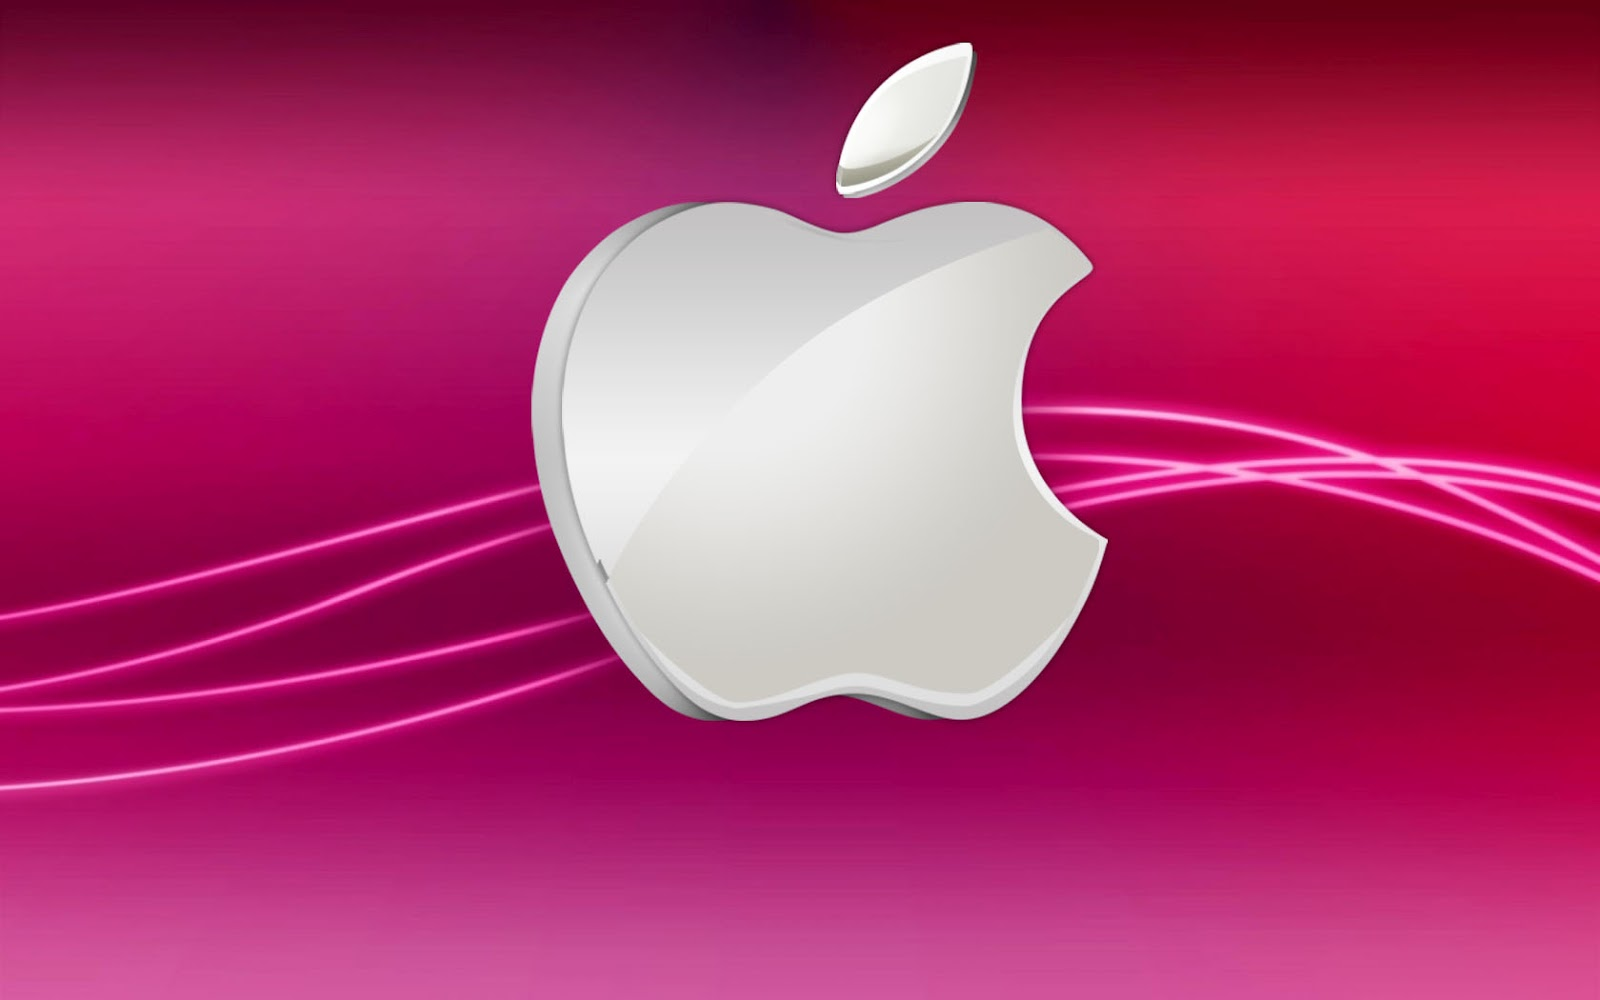 Mobile Full Hd Apple Wallpapers Apple Latest Full Hd Wallpapers For